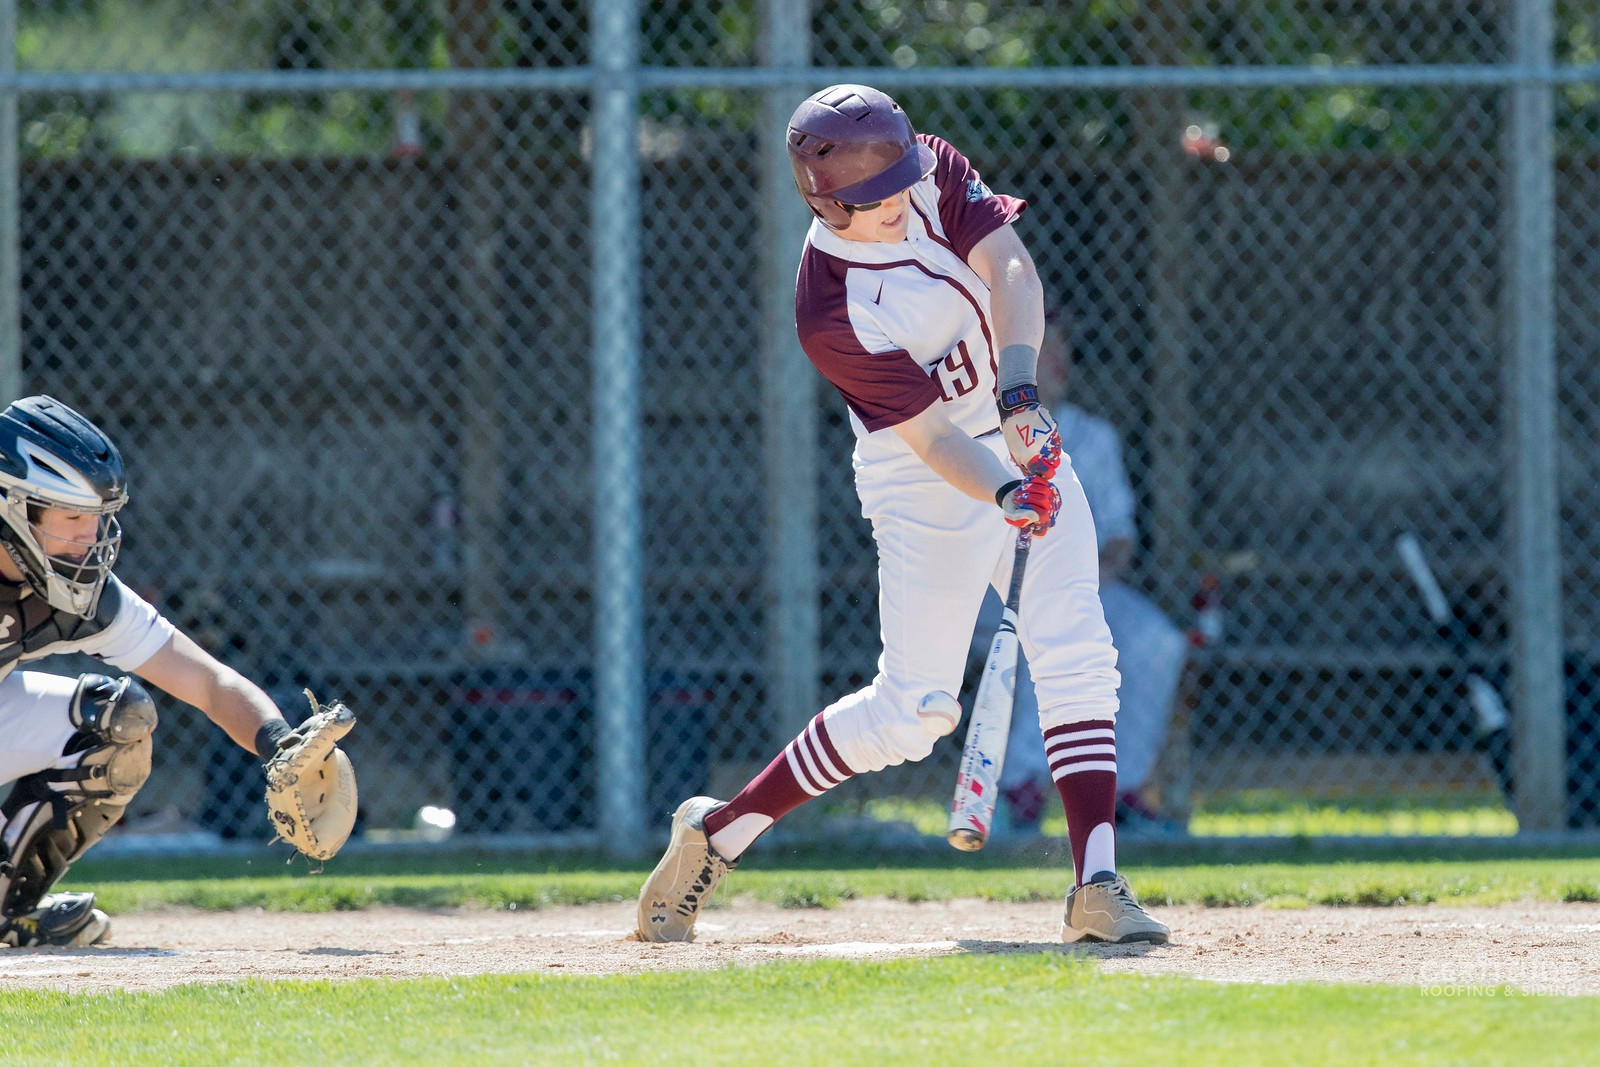 Lower_Merion_BASEBALL_vs_Conestoga-76